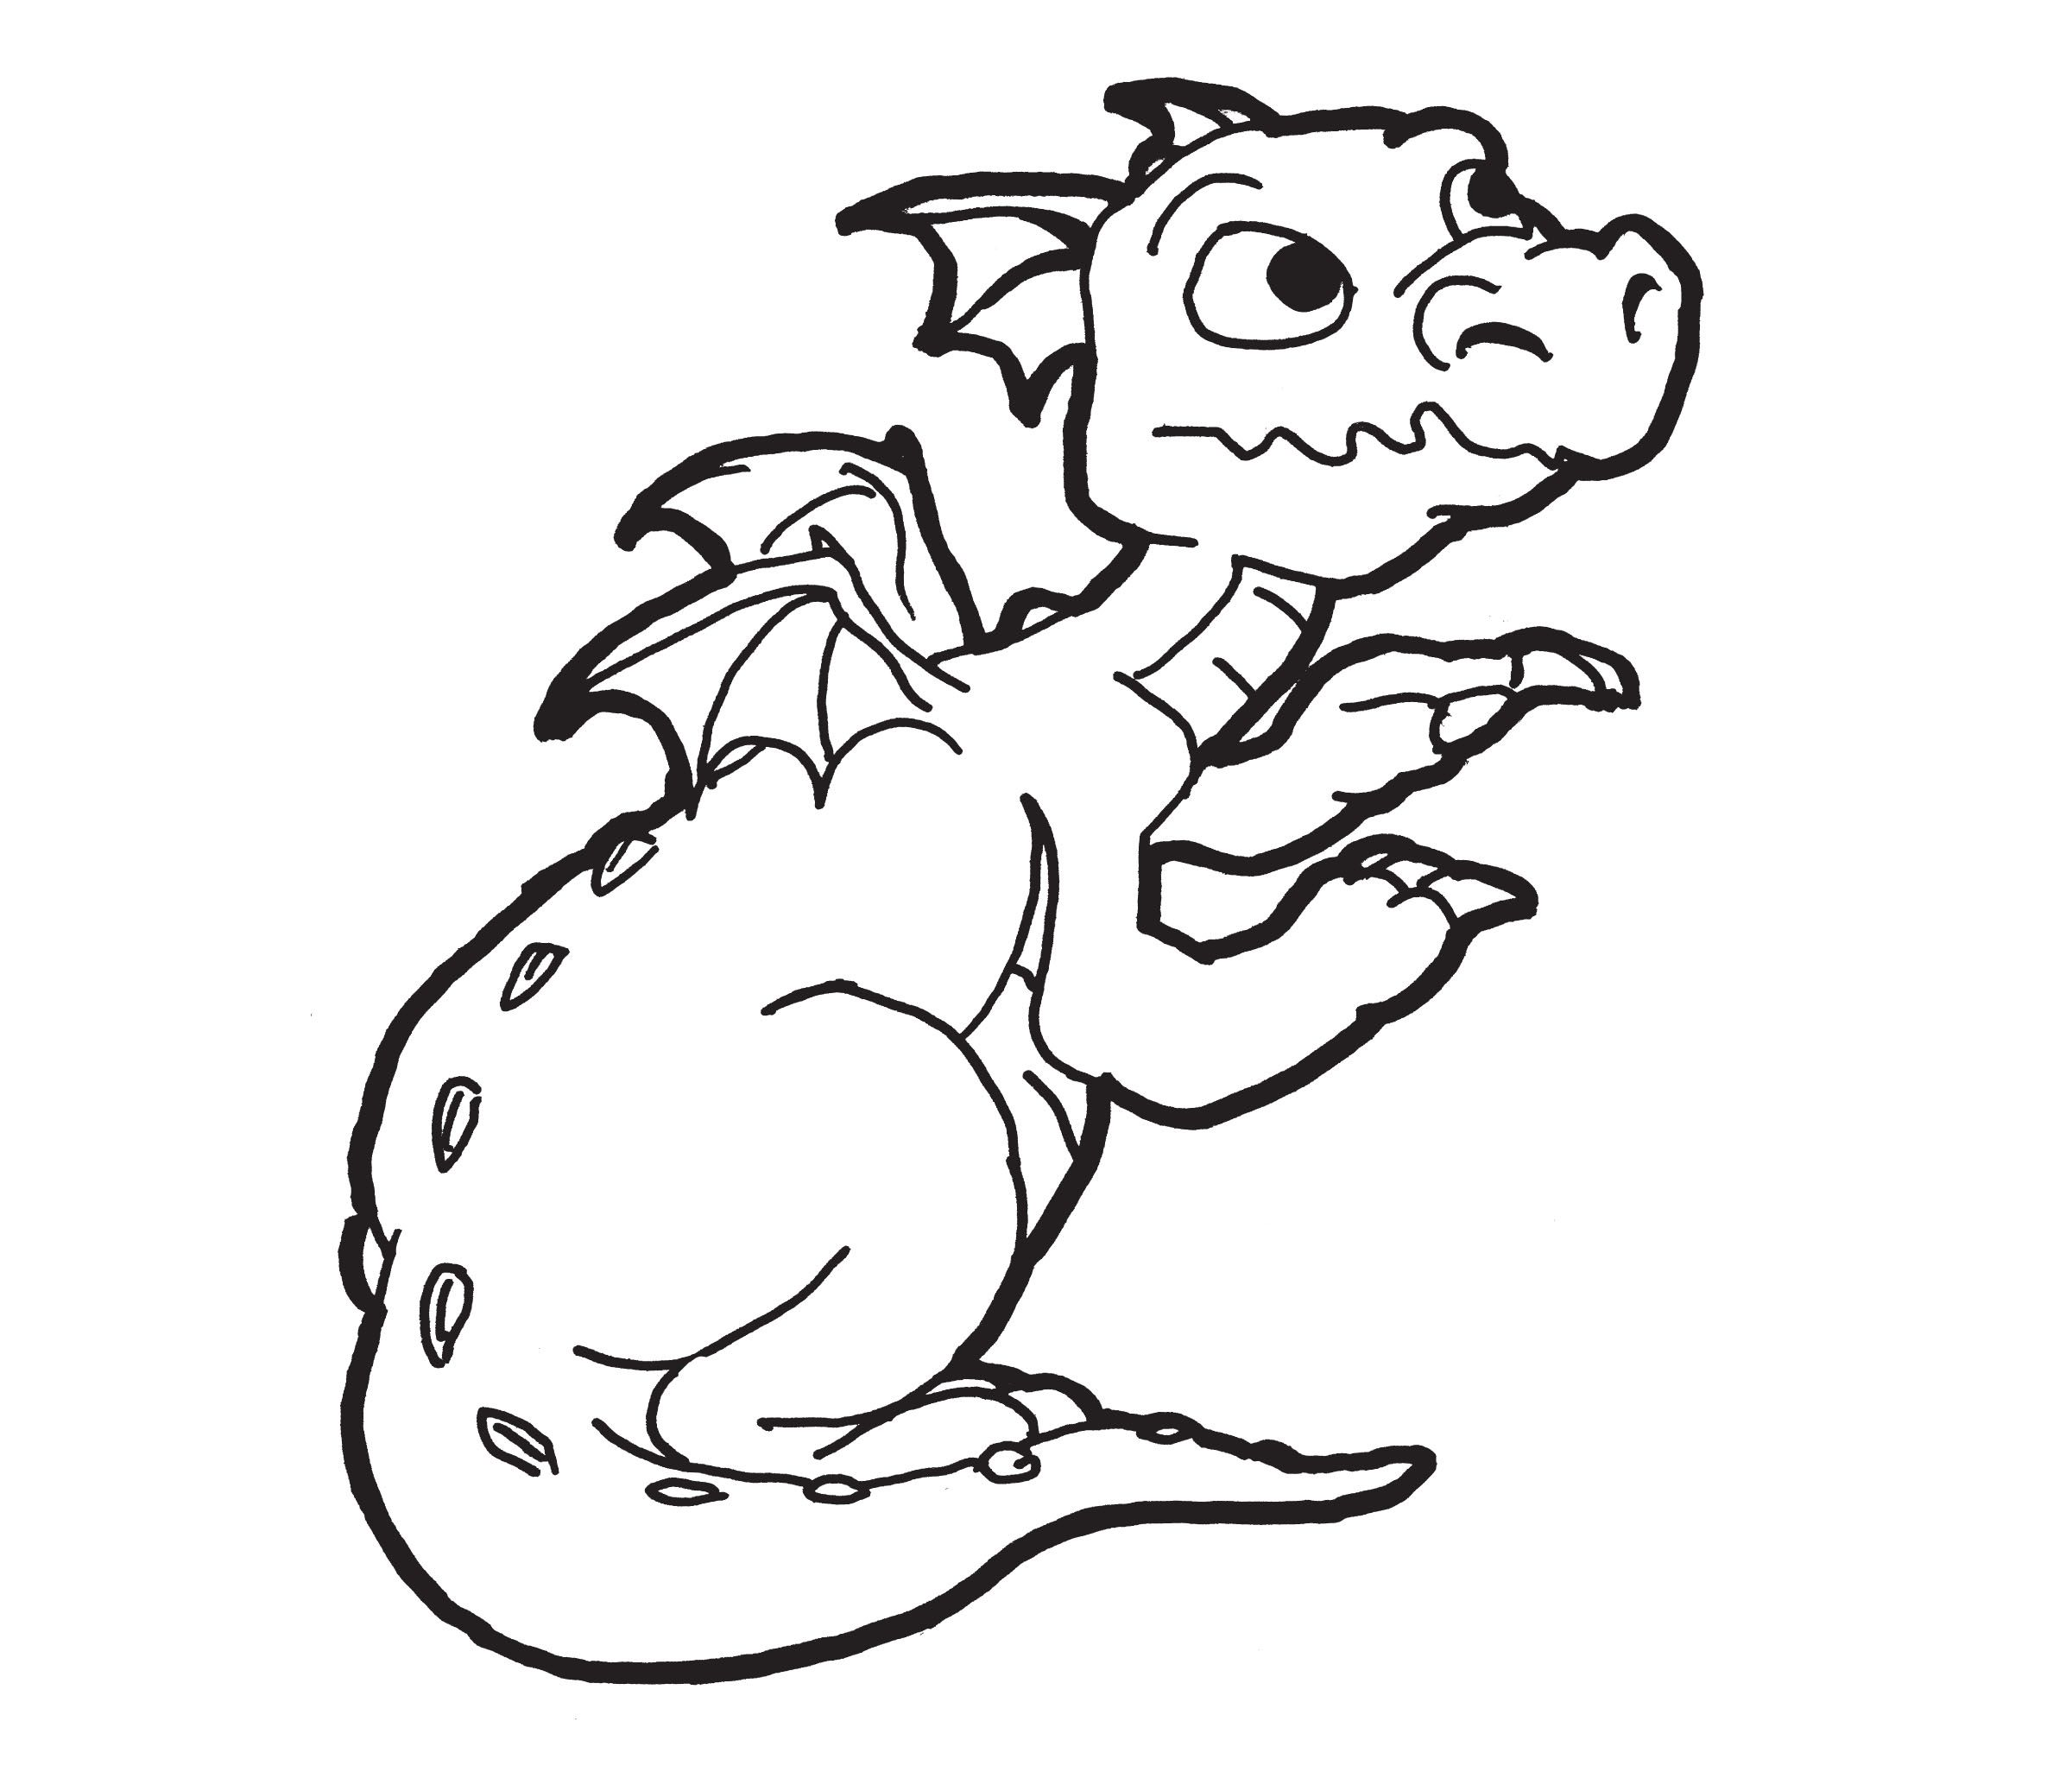 Free Printable Dragon Coloring Pages For Kids | Arte